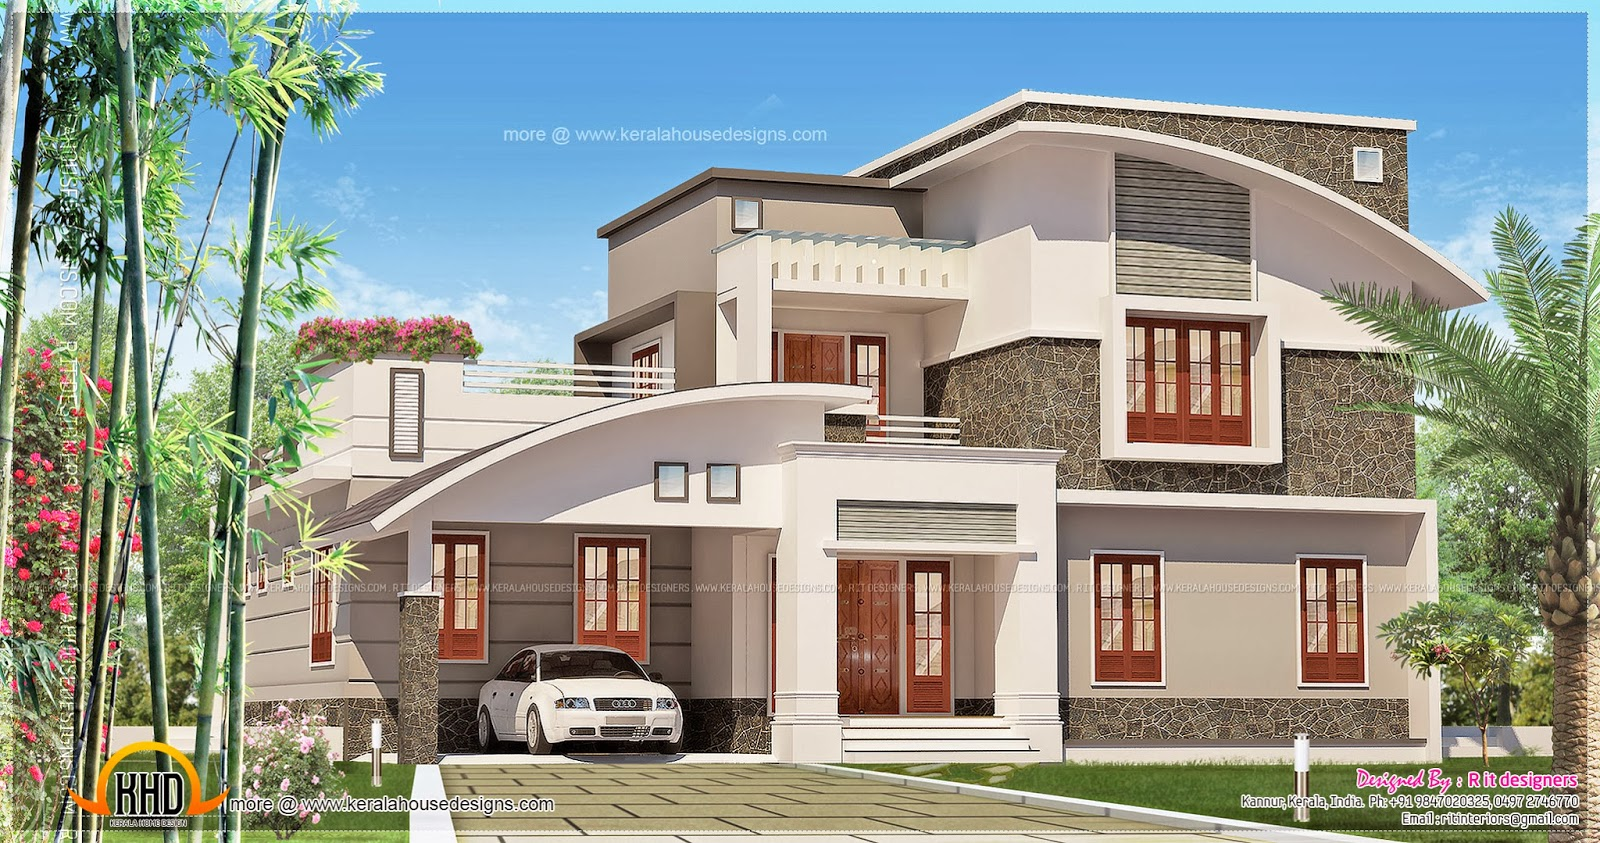 3 bedroom contemporary mix house exterior kerala home for House models and plans